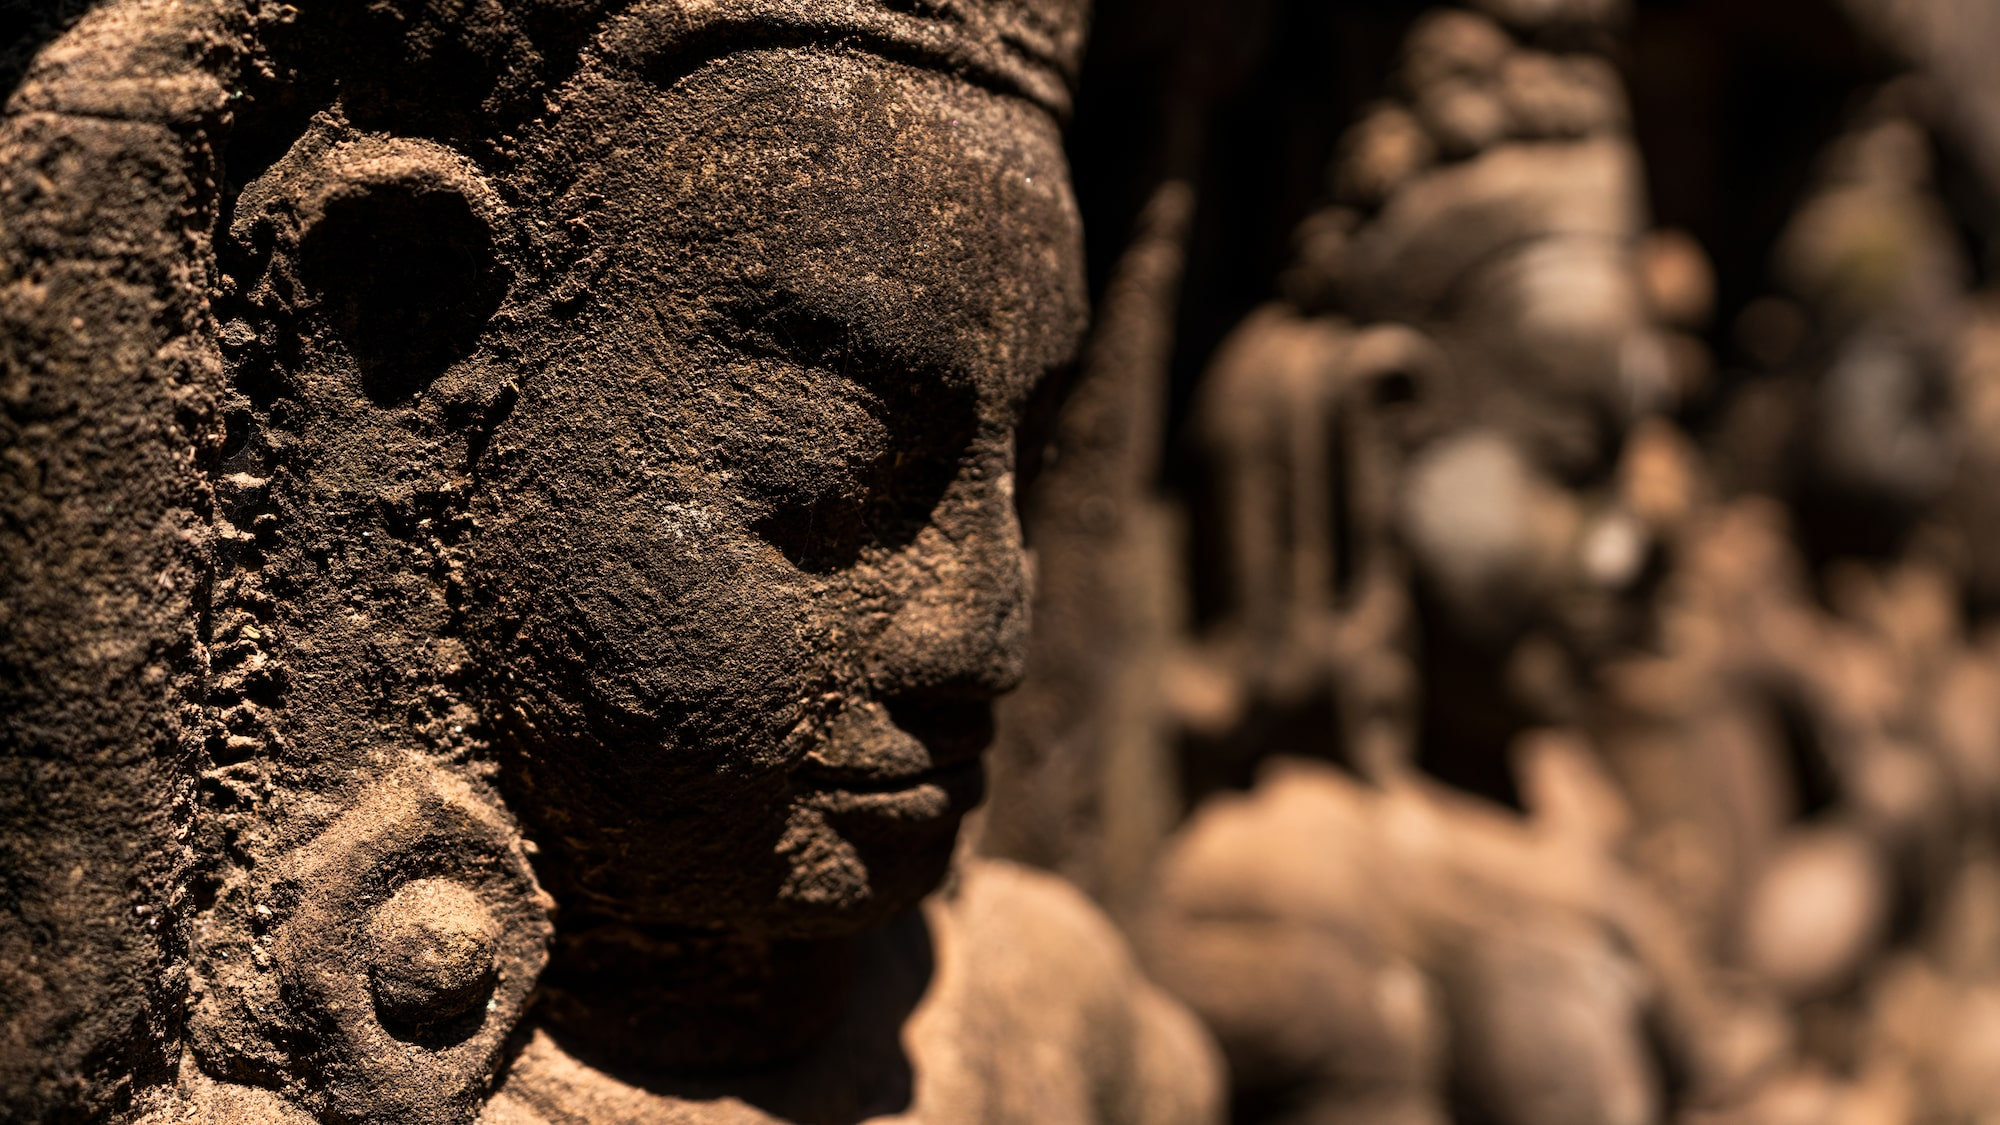 Close-up of rustic statue against bokeh background in Leper King Terrace